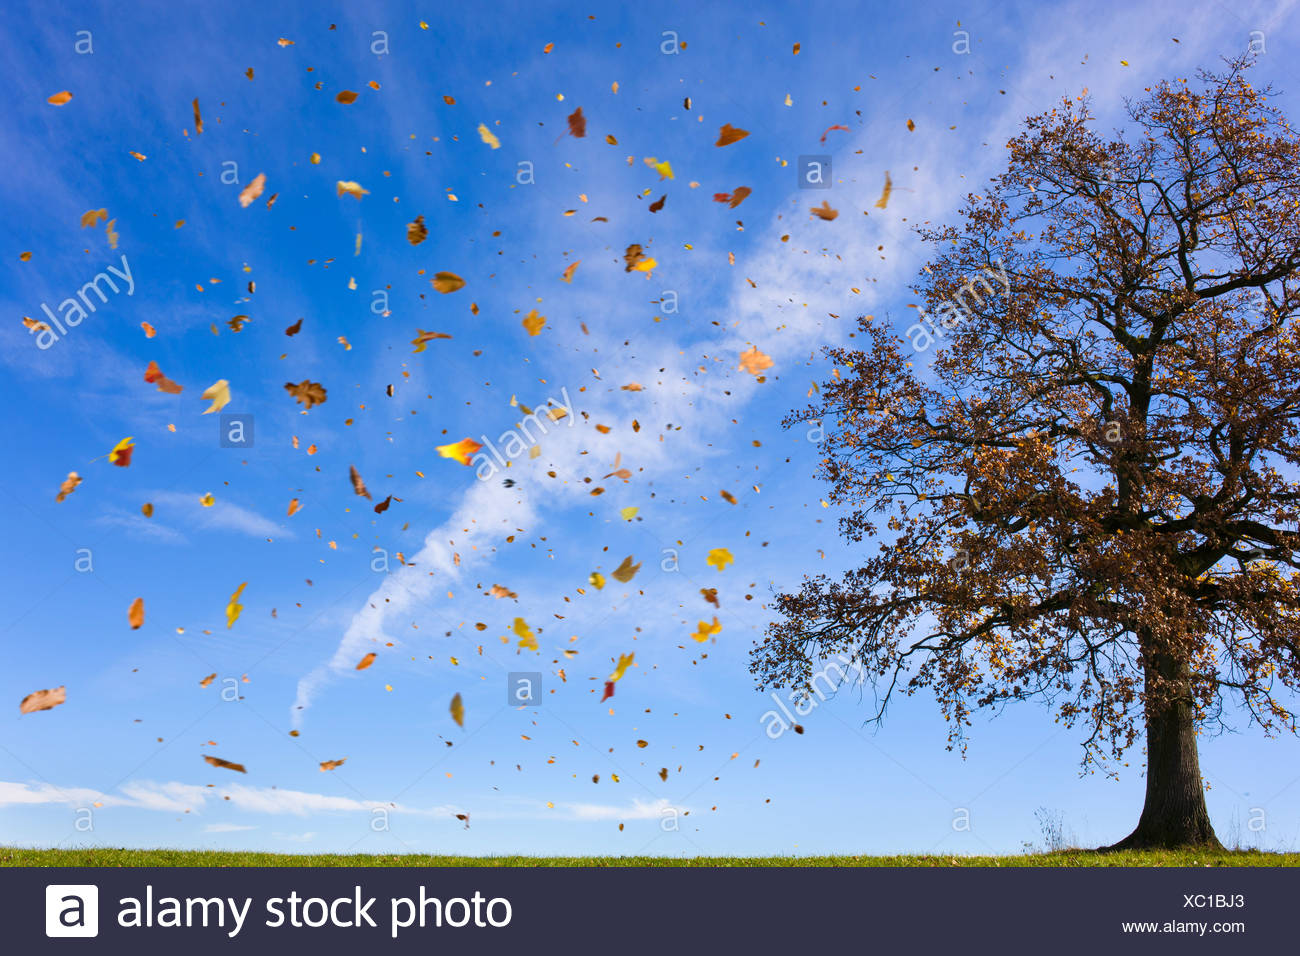 Autumn leaves flying in rural field - Stock Image